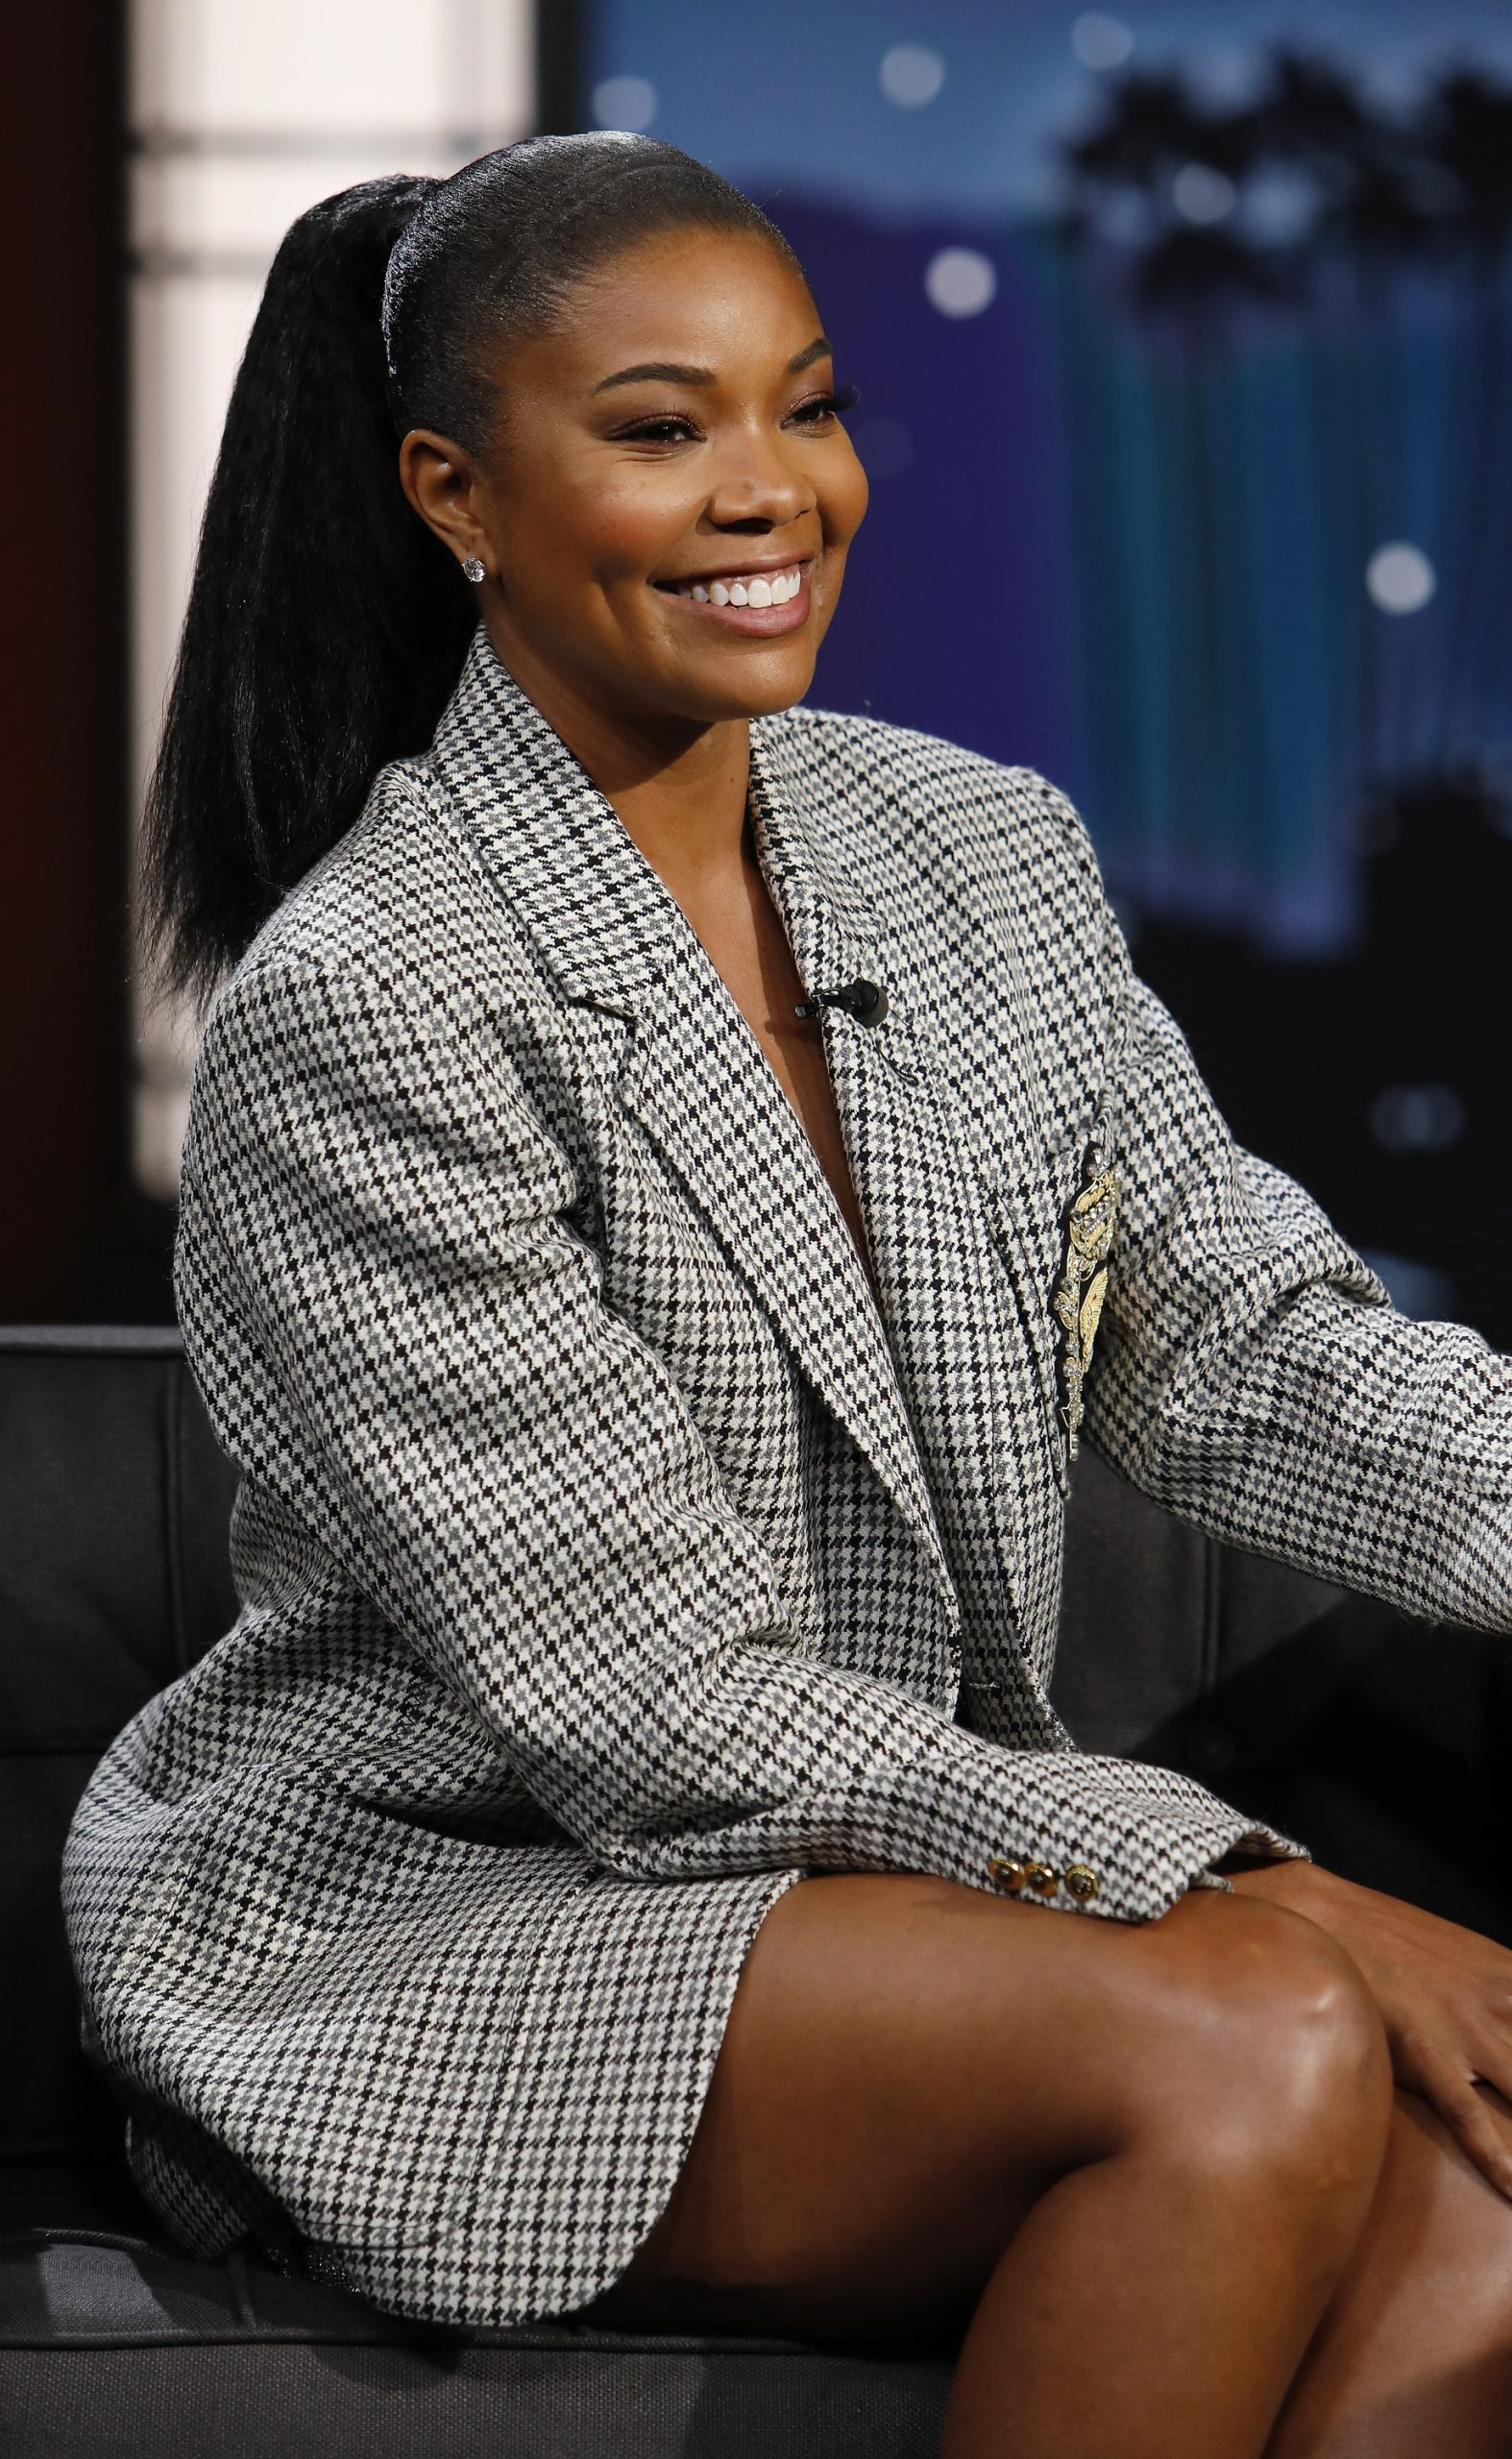 In Case You Missed It: Gabrielle Union On 'Jimmy Kimmel Live'